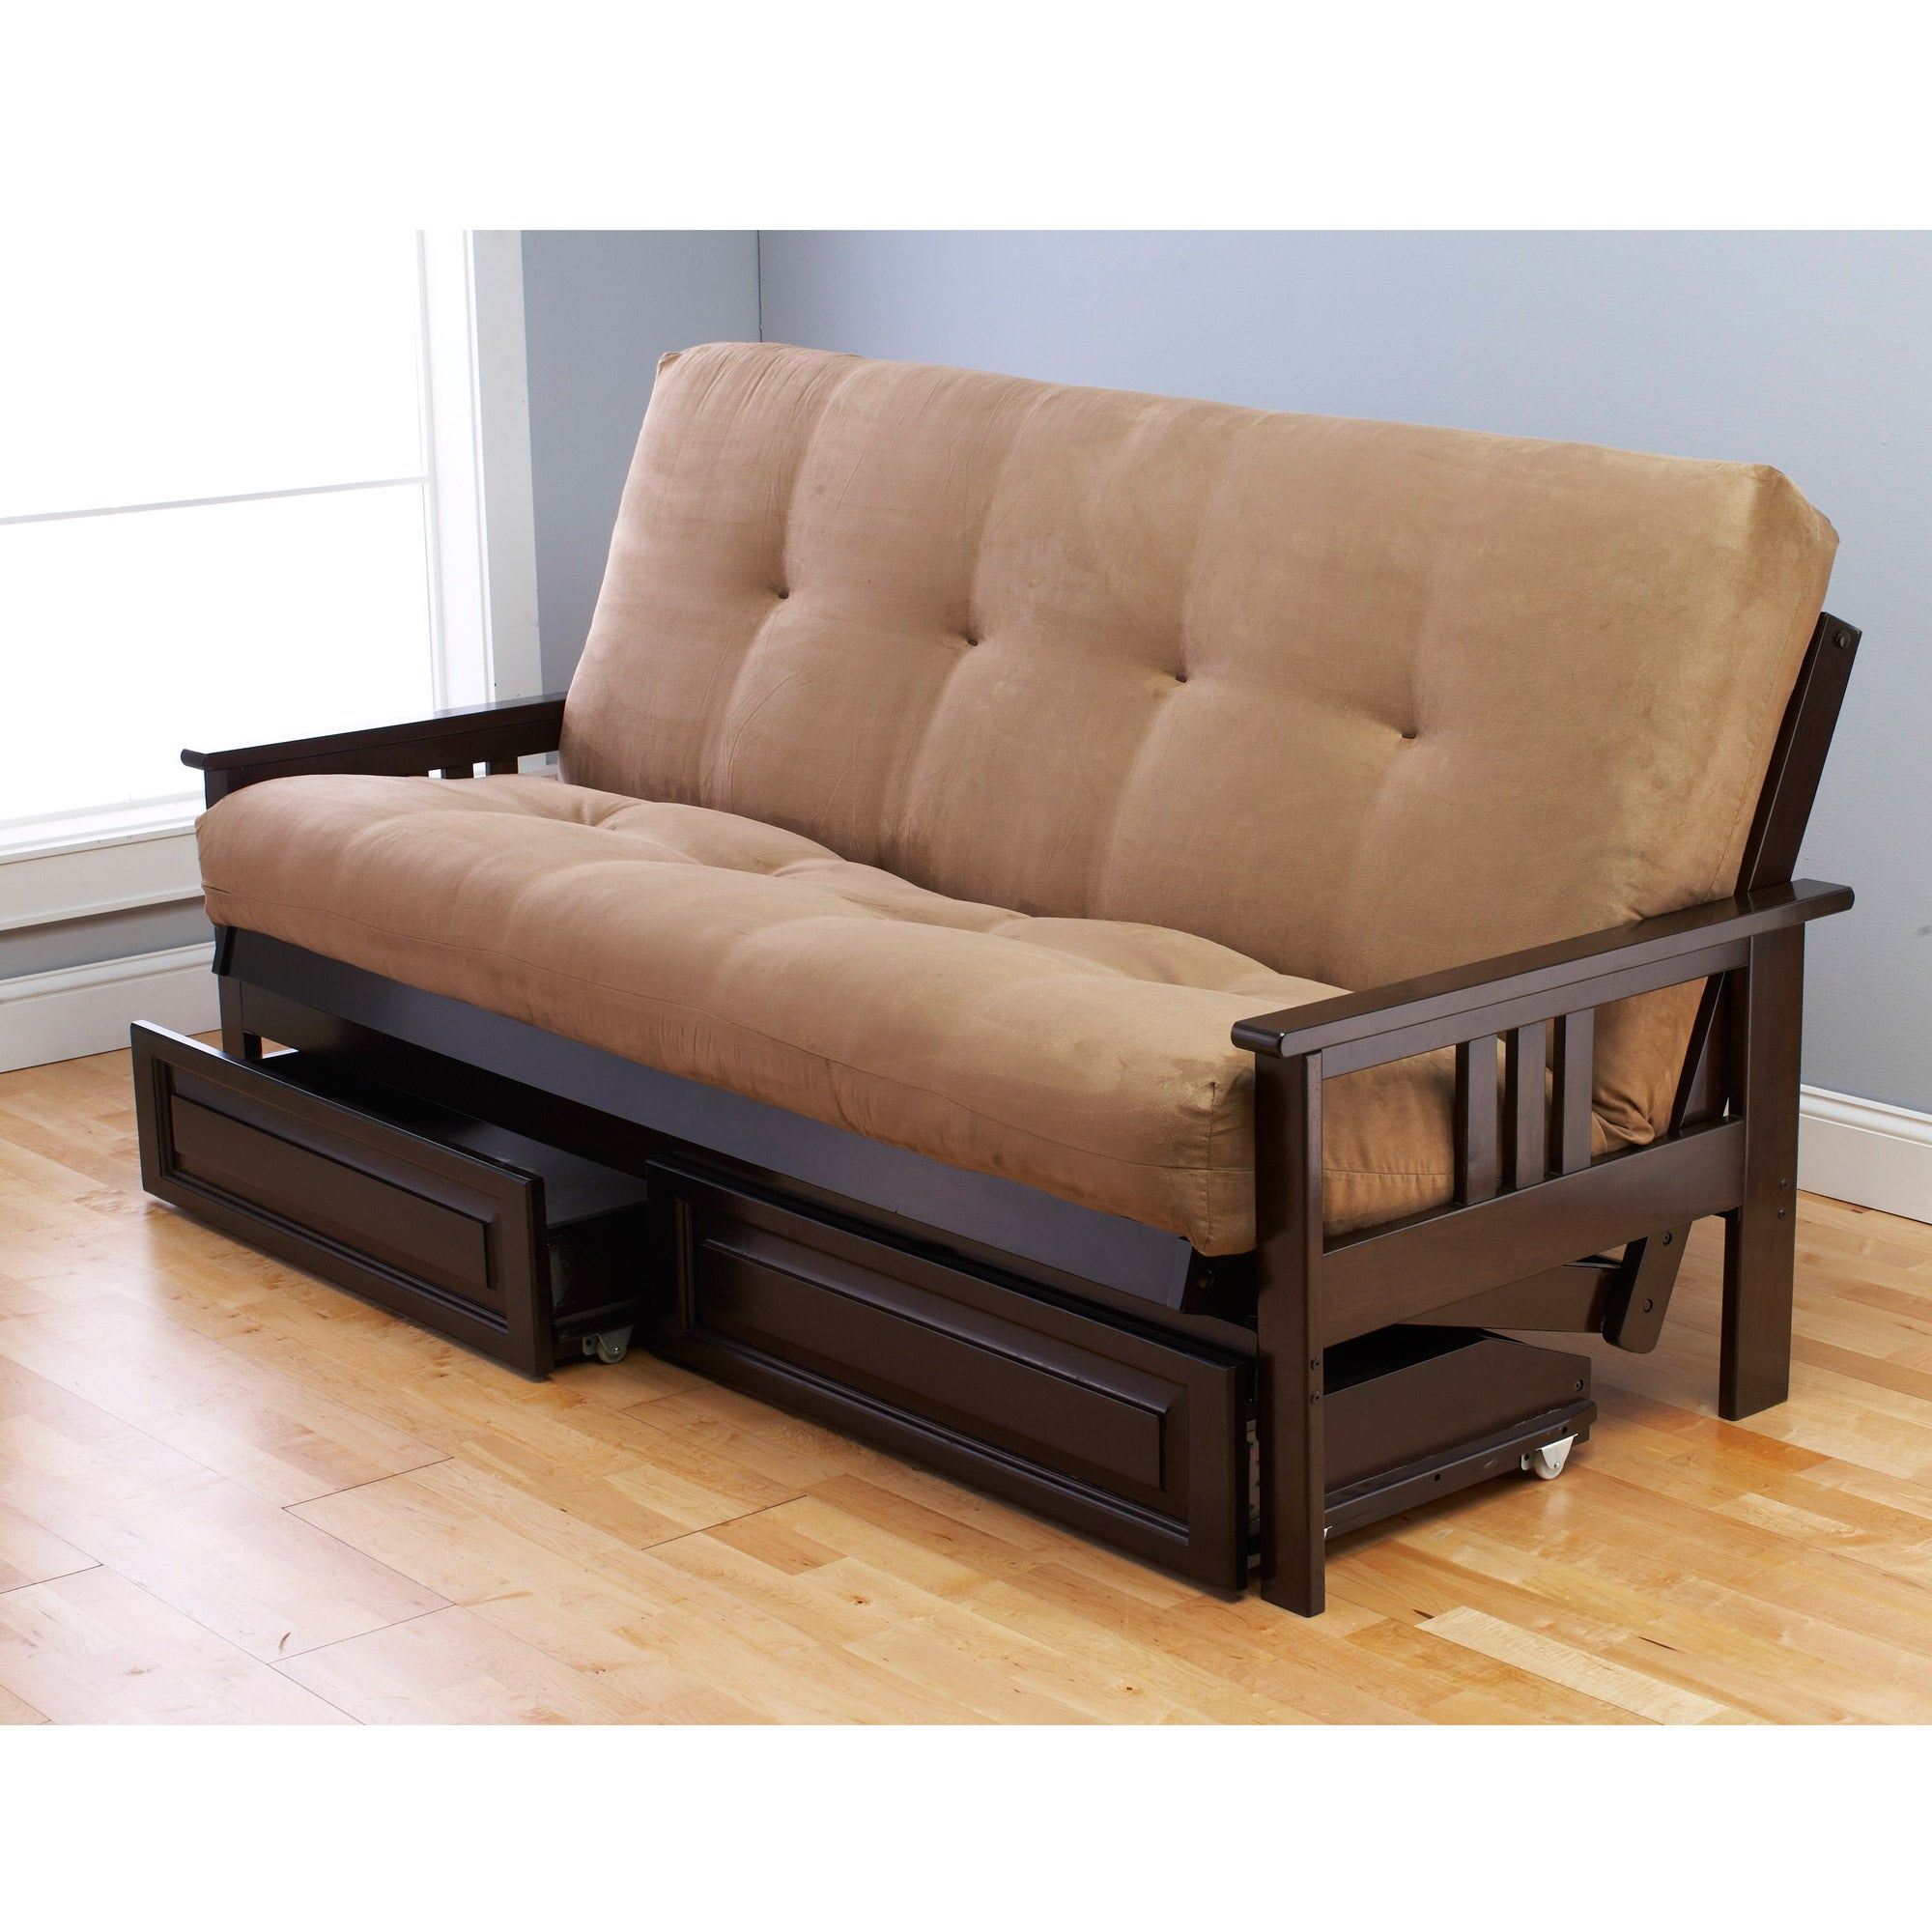 Beli Mont Multi-flex Espresso Futon Frame, Drawers and Mattress Set at Sears.com